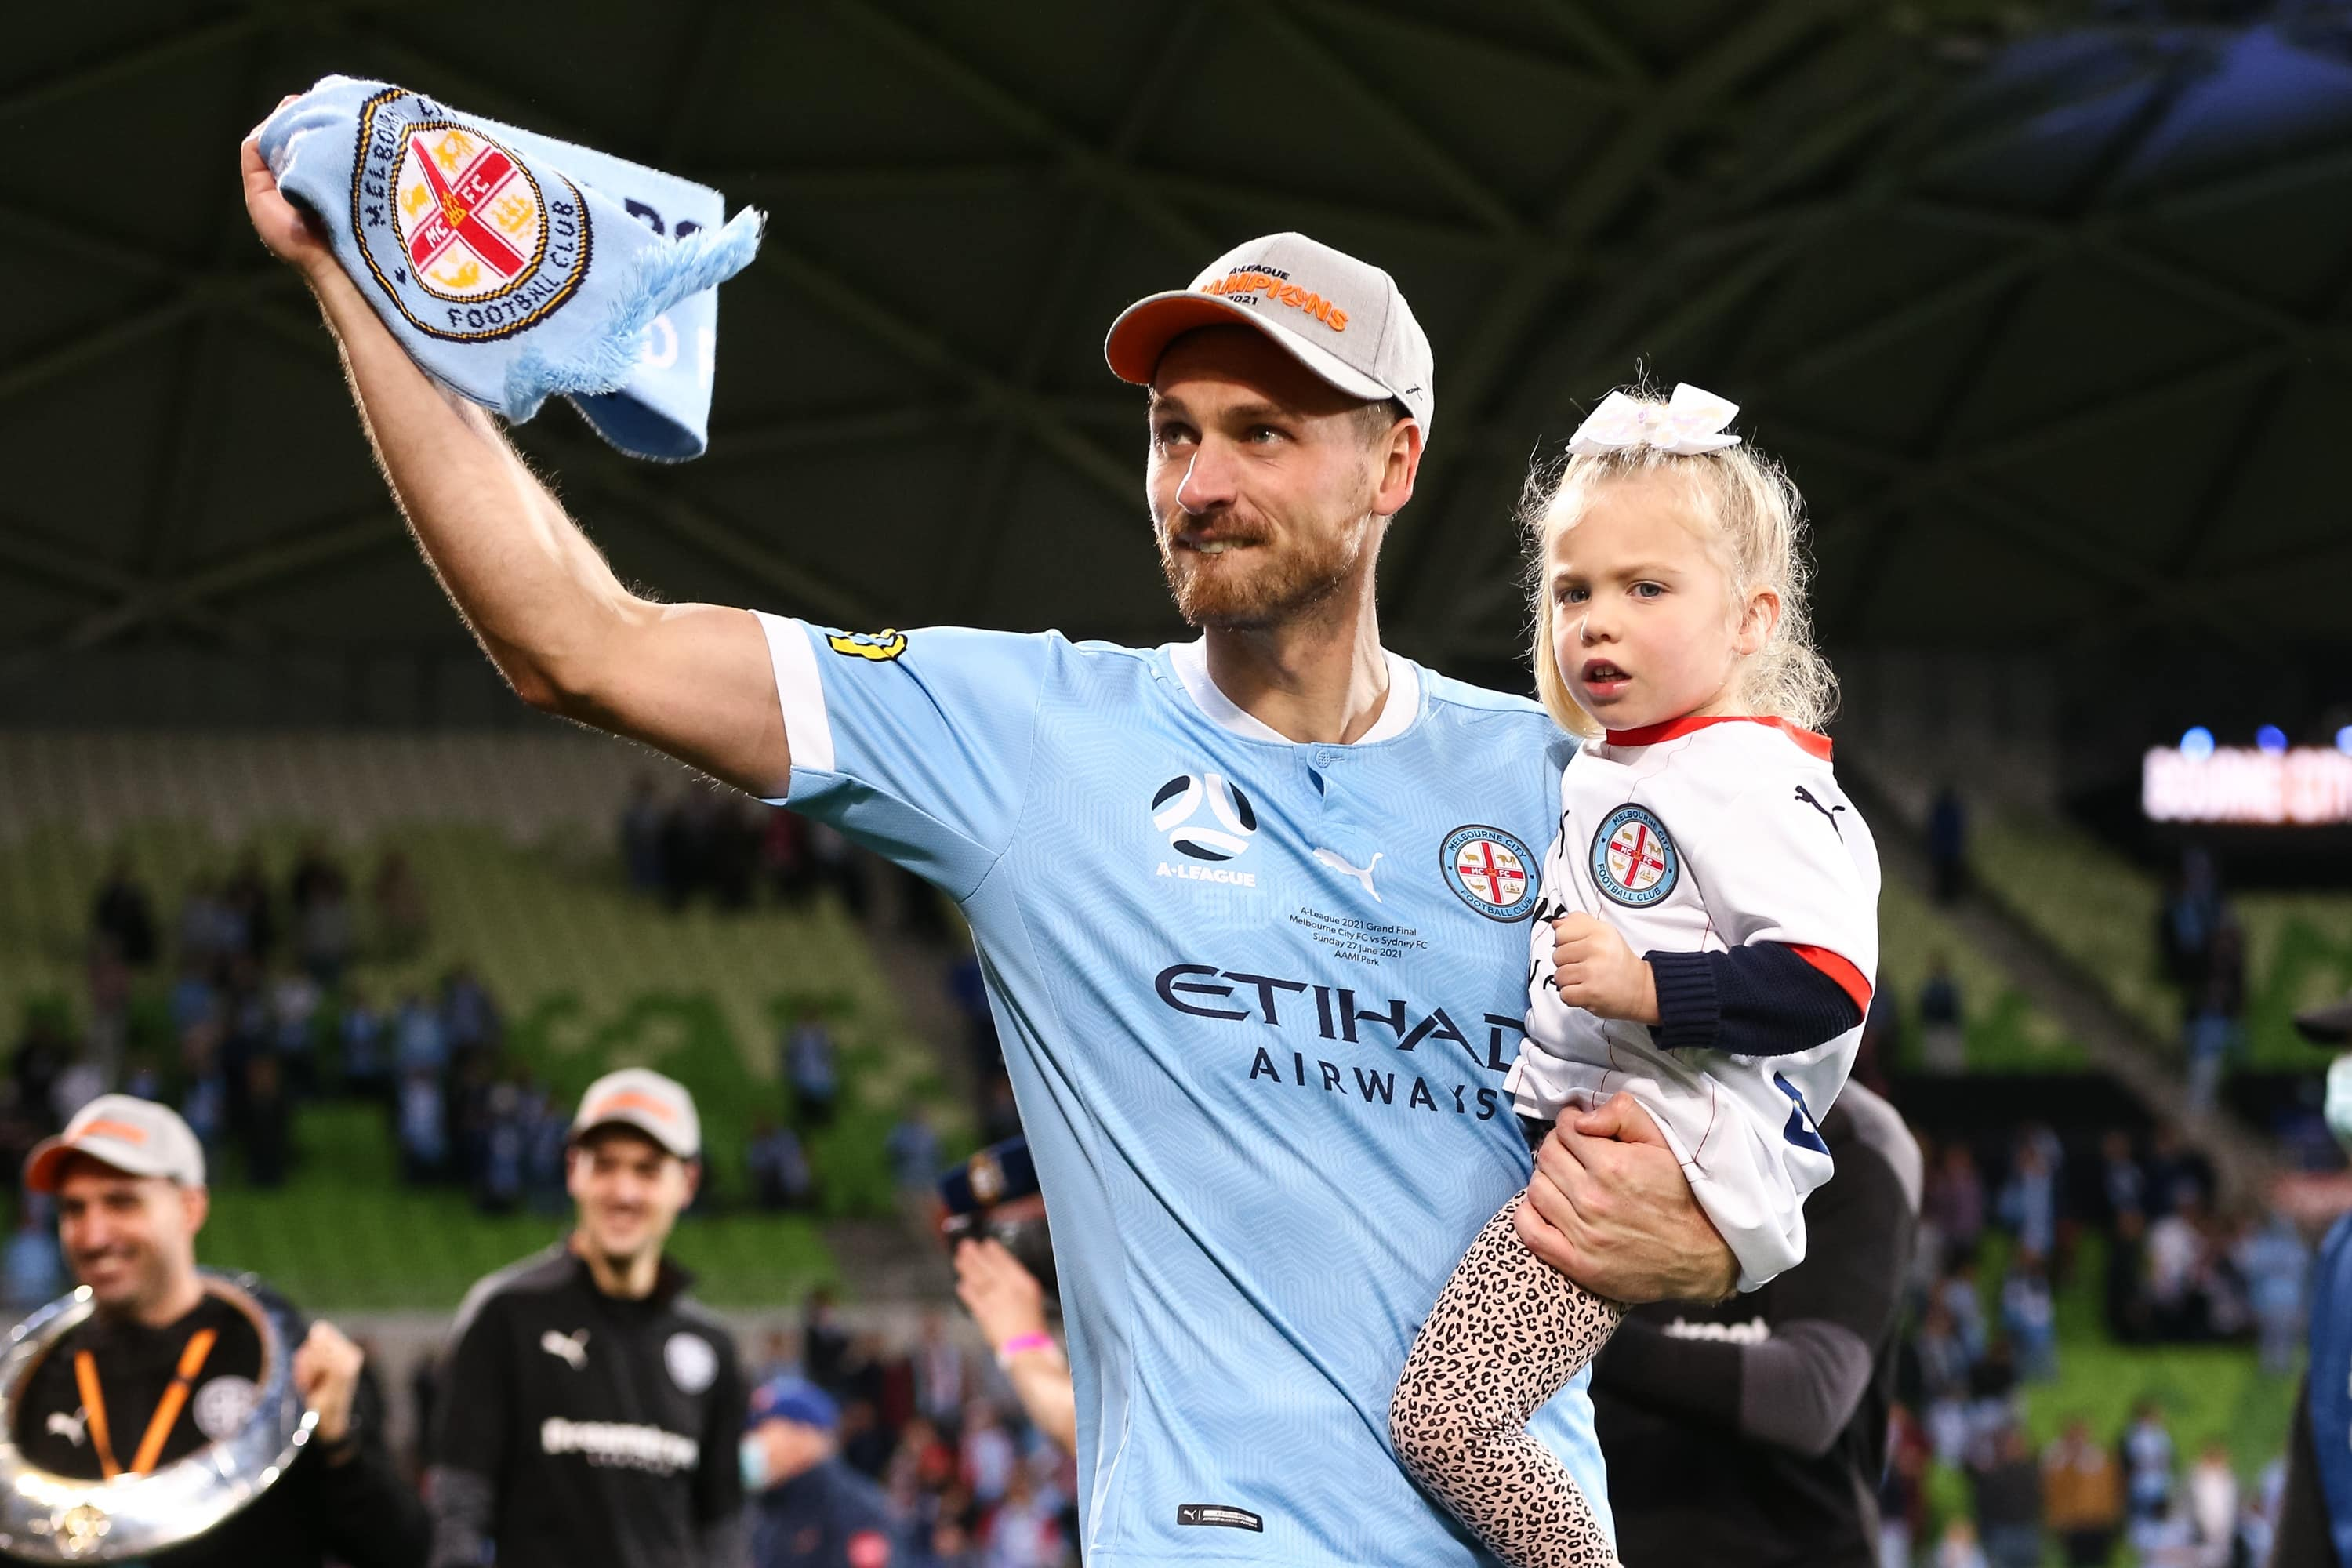 MELBOURNE, AUSTRALIA - JUNE 27: Rostyn Griffiths of Melbourne City carries his daughter onto the field during the A-League Grand-Final soccer match between Melbourne City FC and Sydney FC on June 27, 2021 at AAMI Park in Melbourne, Australia. (Photo by Dave Hewison/Speed Media/Icon Sportswire)